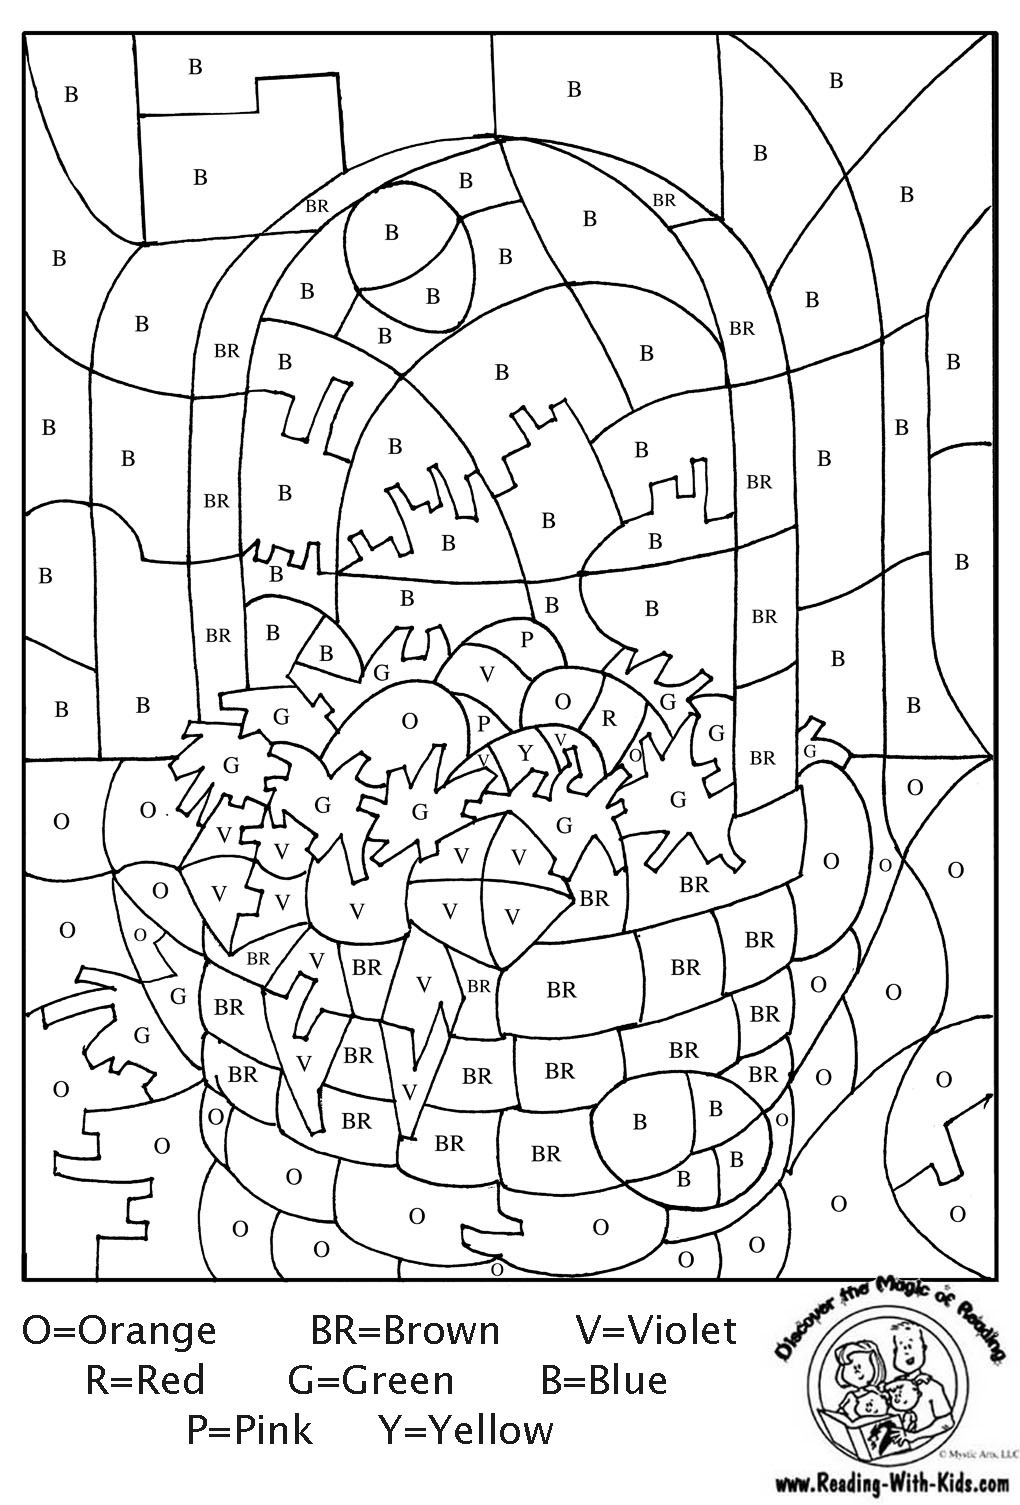 coloring by number coloring pages christmas color by numbers best coloring pages for kids by coloring pages coloring number